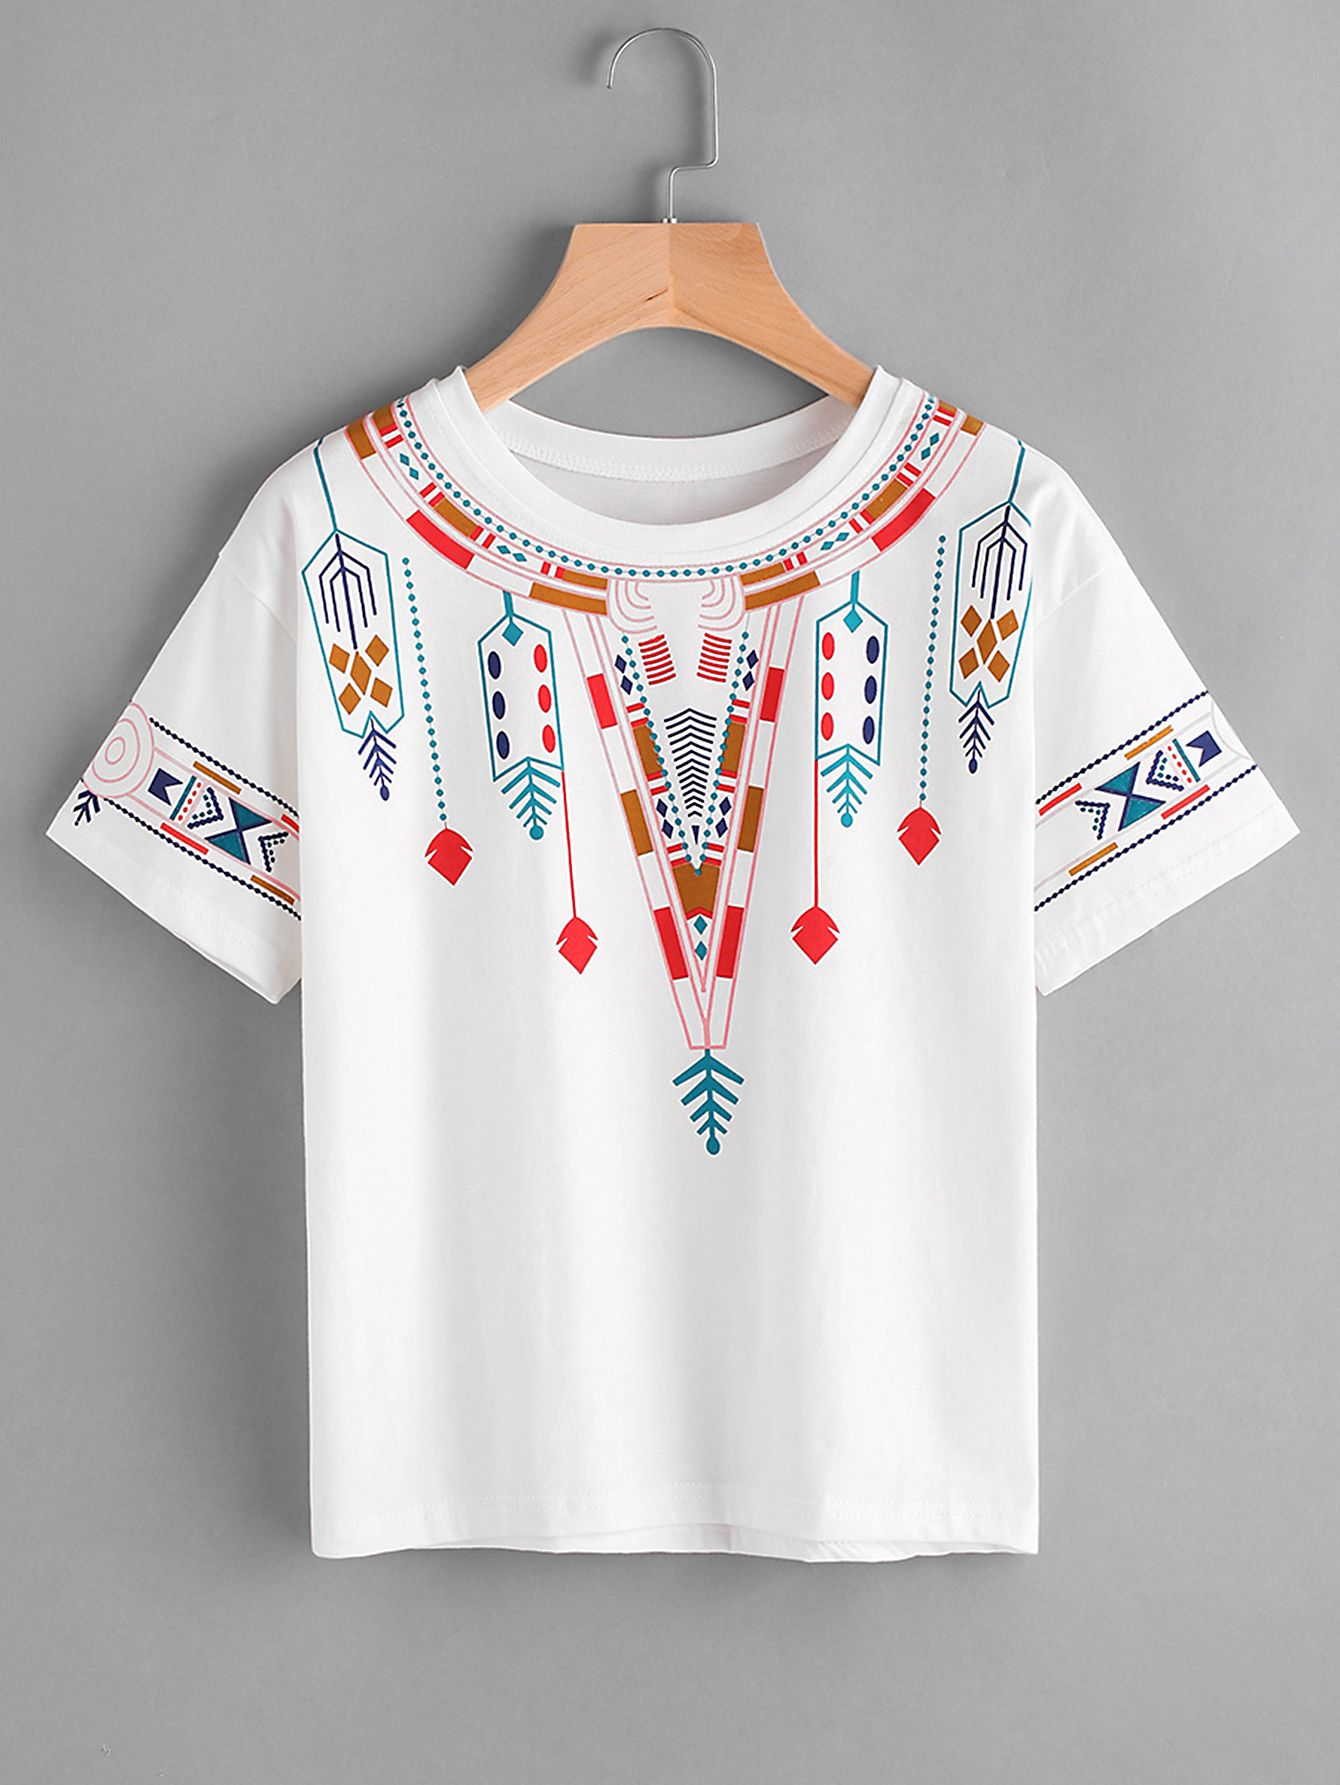 d7b1779187cd Shop Aztec Print Tee online. SheIn offers Aztec Print Tee & more to ...